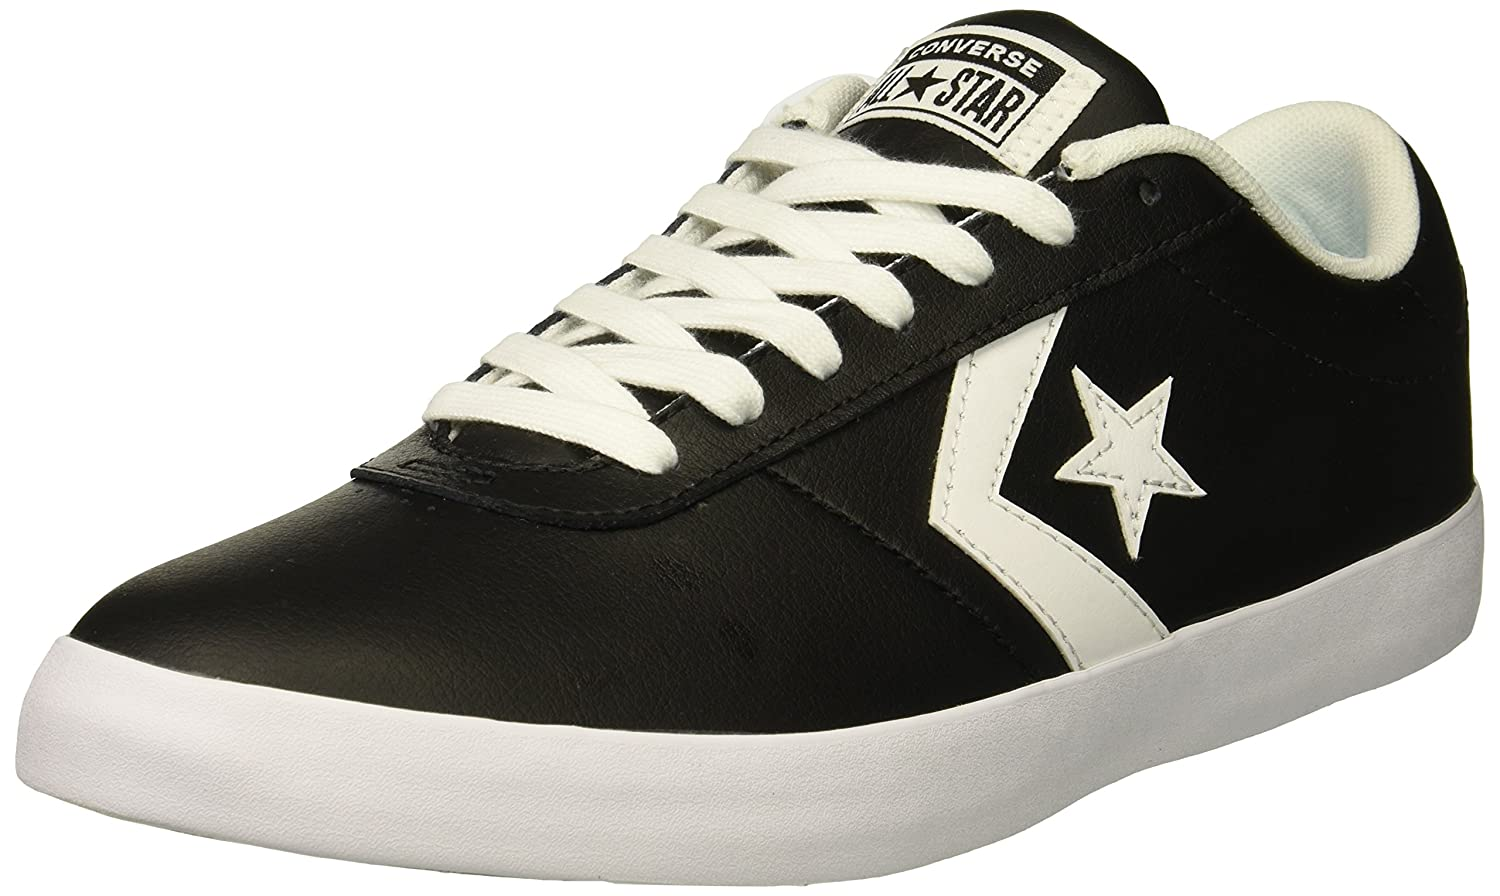 Converse Unisex-Kinder Star Lifestyle Point Star Unisex-Kinder Ox Leather Fitnessschuhe 1fbb25